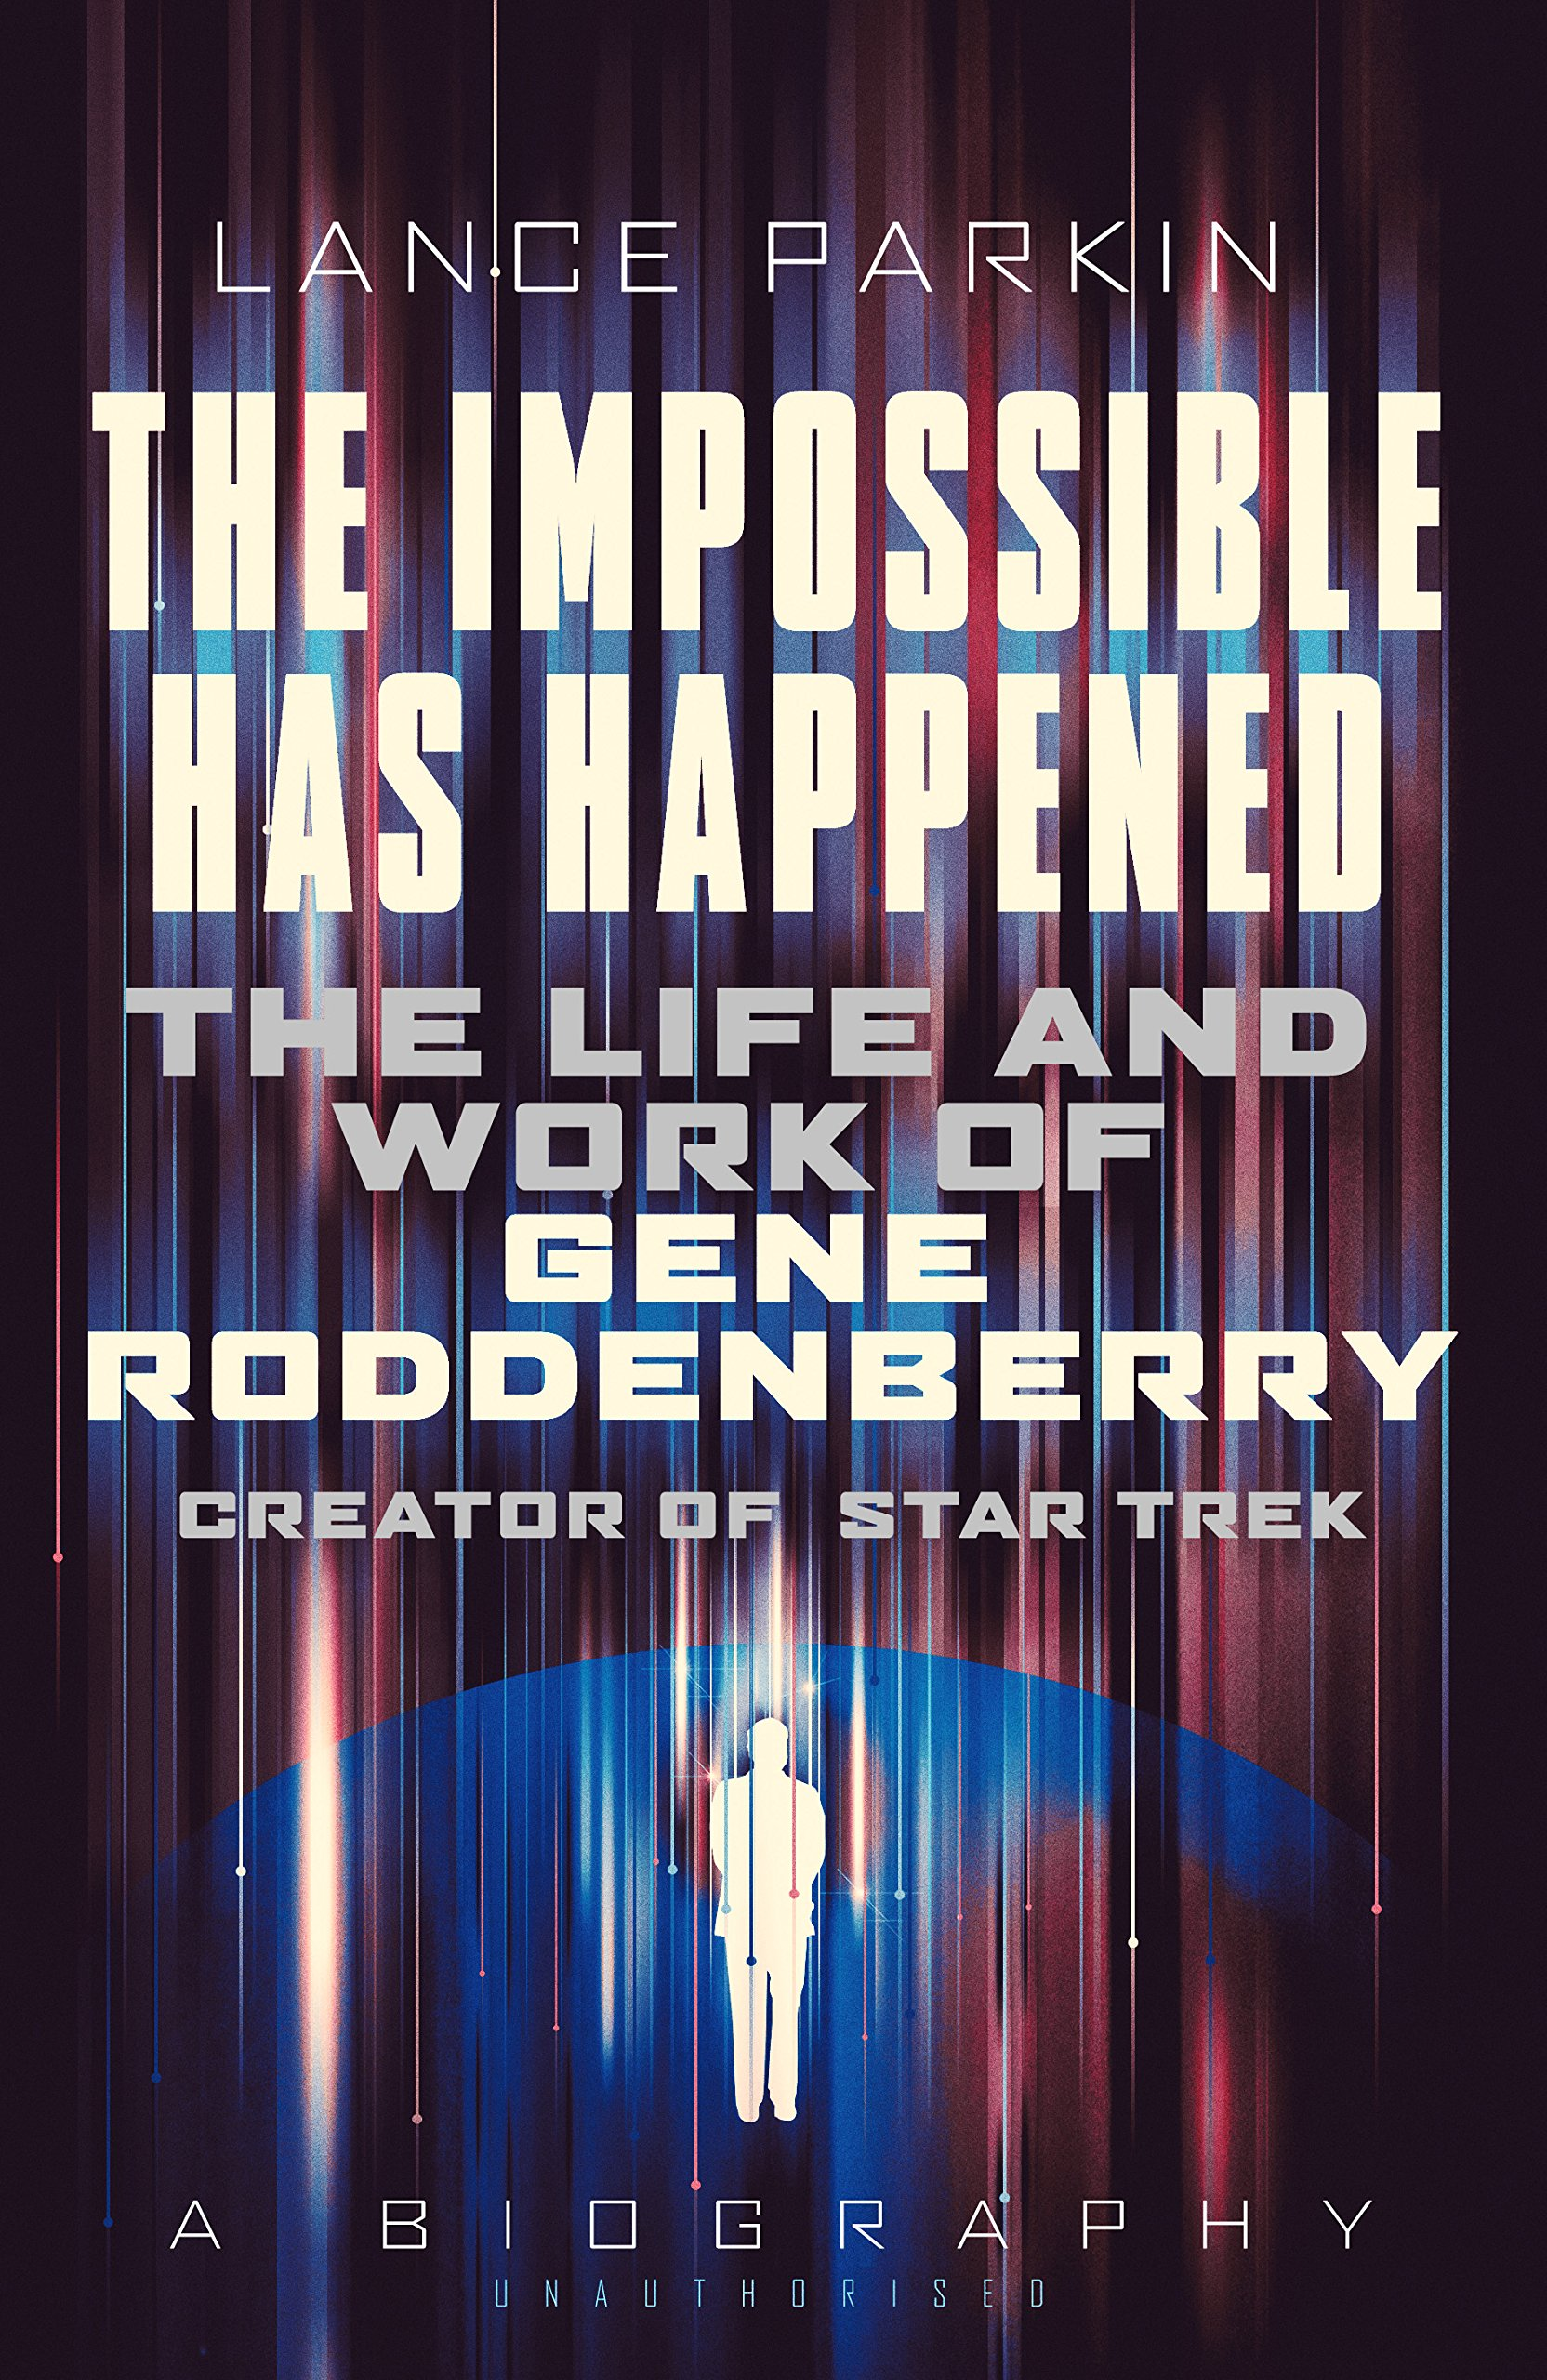 The Impossible Has Happened: The Life and Work of Gene Roddenberry Creator of Star Trek